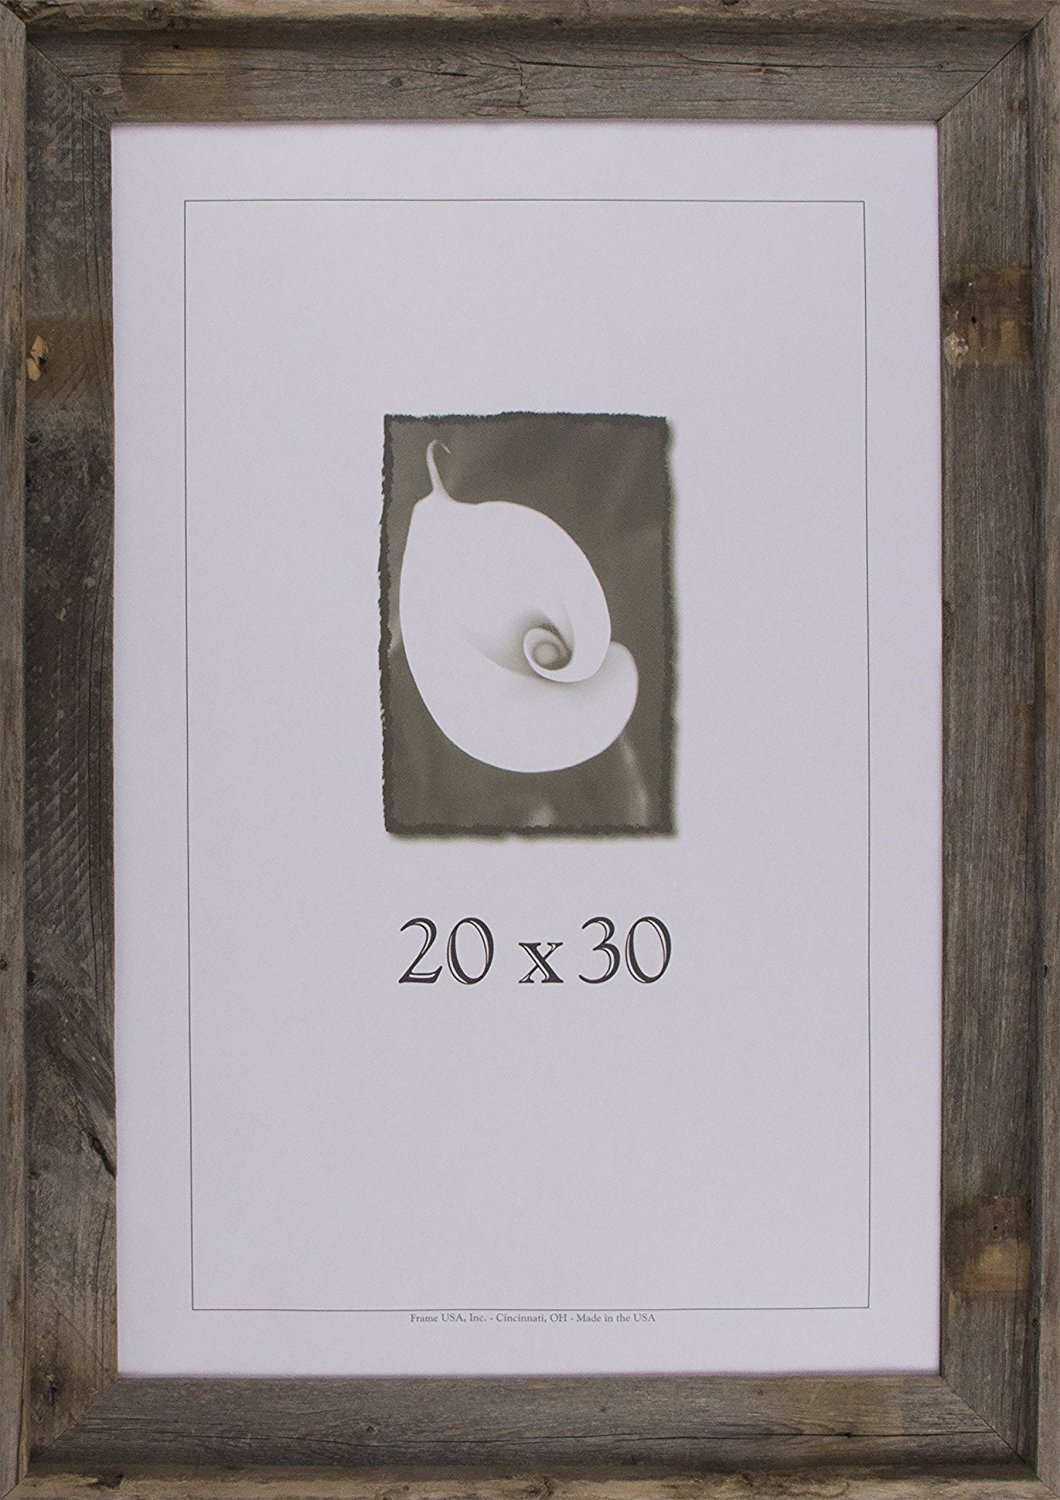 US Art Frames 4x6 Black Solid wood .84 inch /(Poplar/) Picture ...